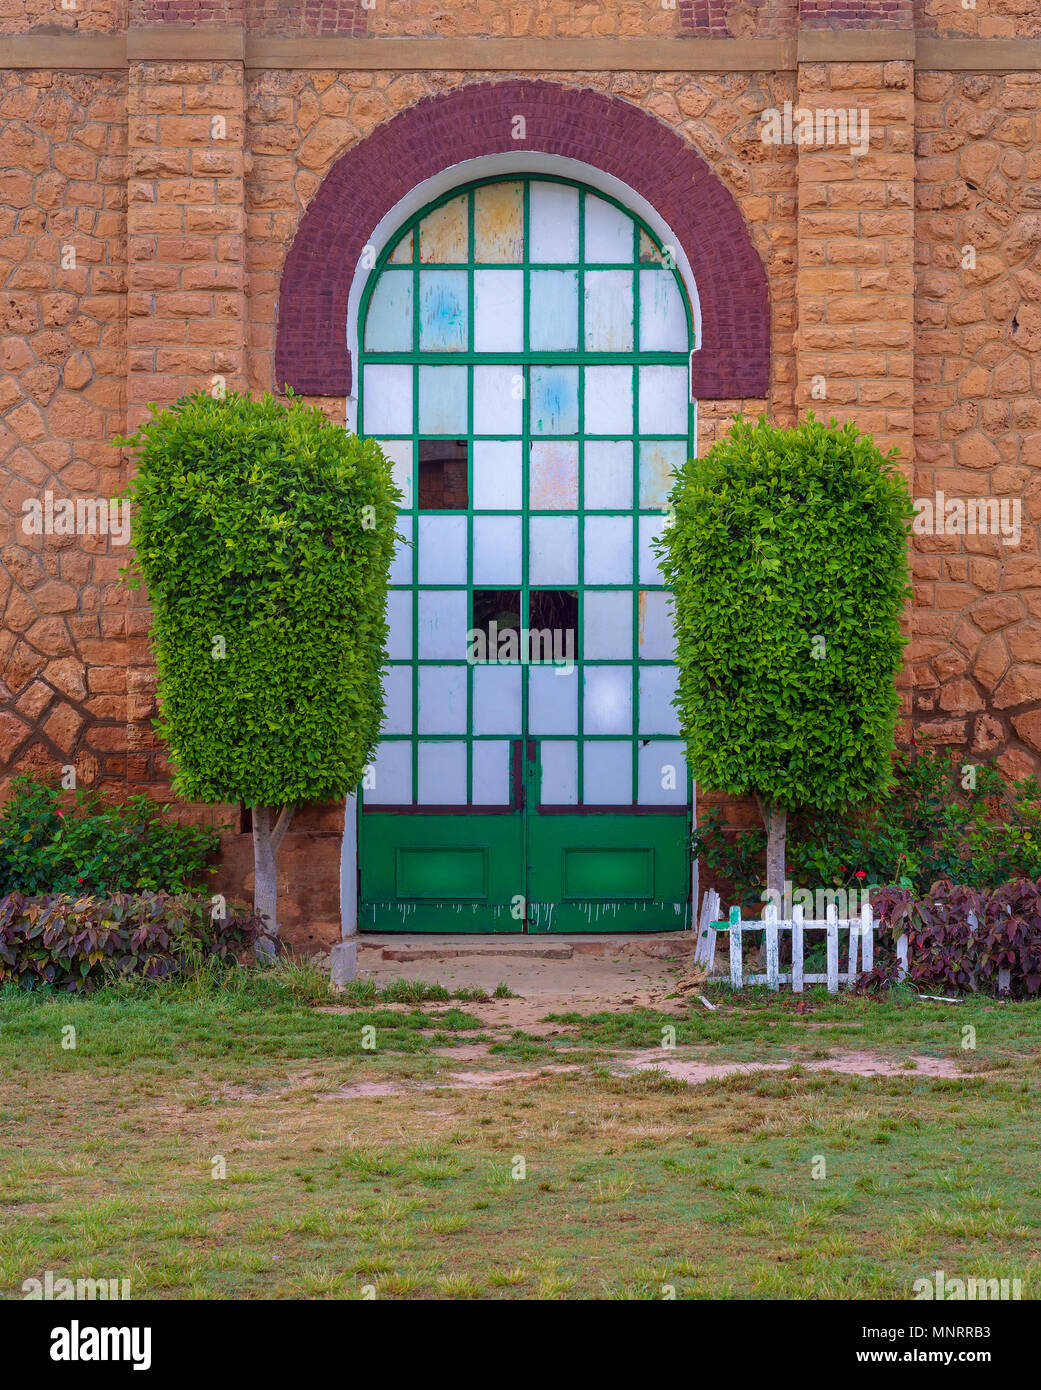 Closed grunge door with green metal grid framed by two green bushes in orange colored bricks stone wall in sunrise time at Montaza public park, Alexan - Stock Image